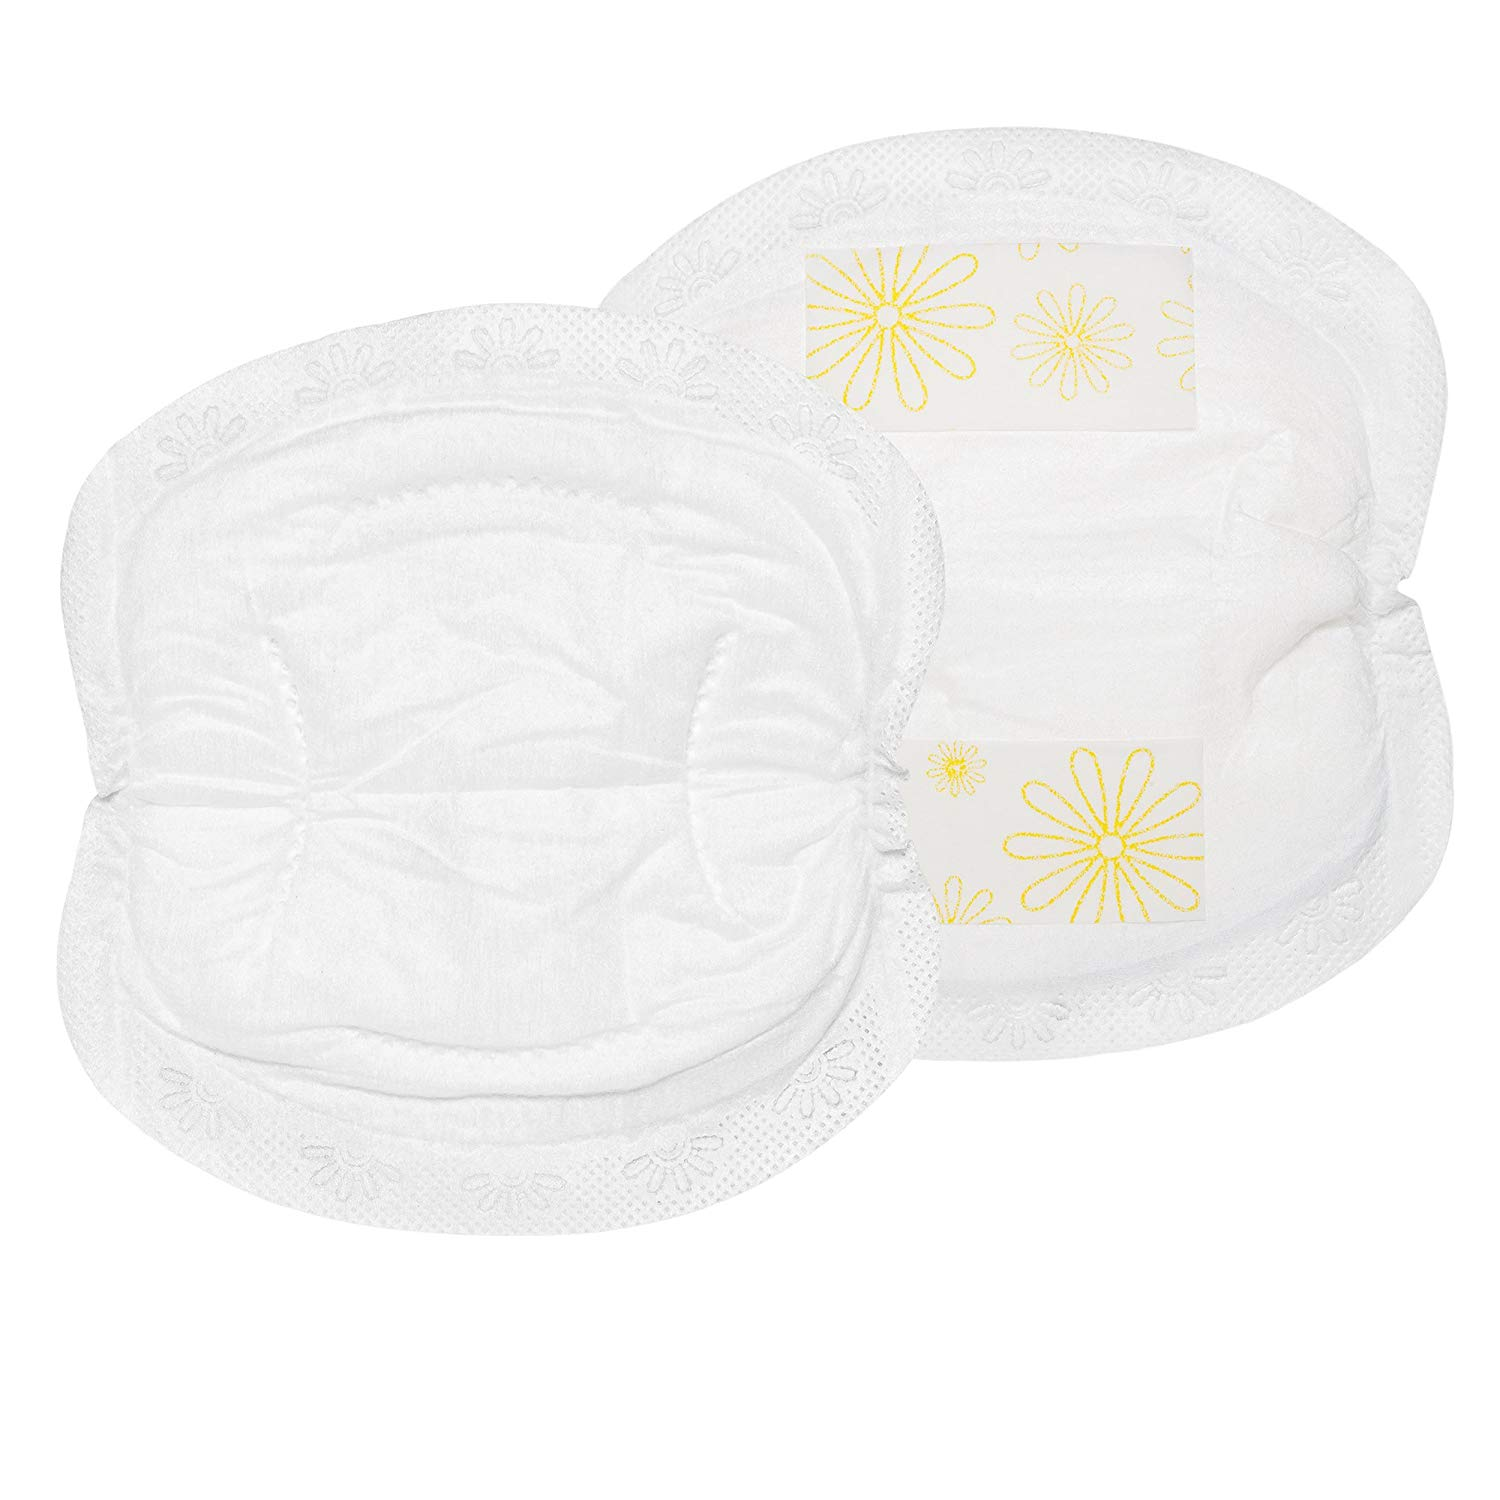 medela-disposable-nursing-pads-pack-of-30-kuwait-online